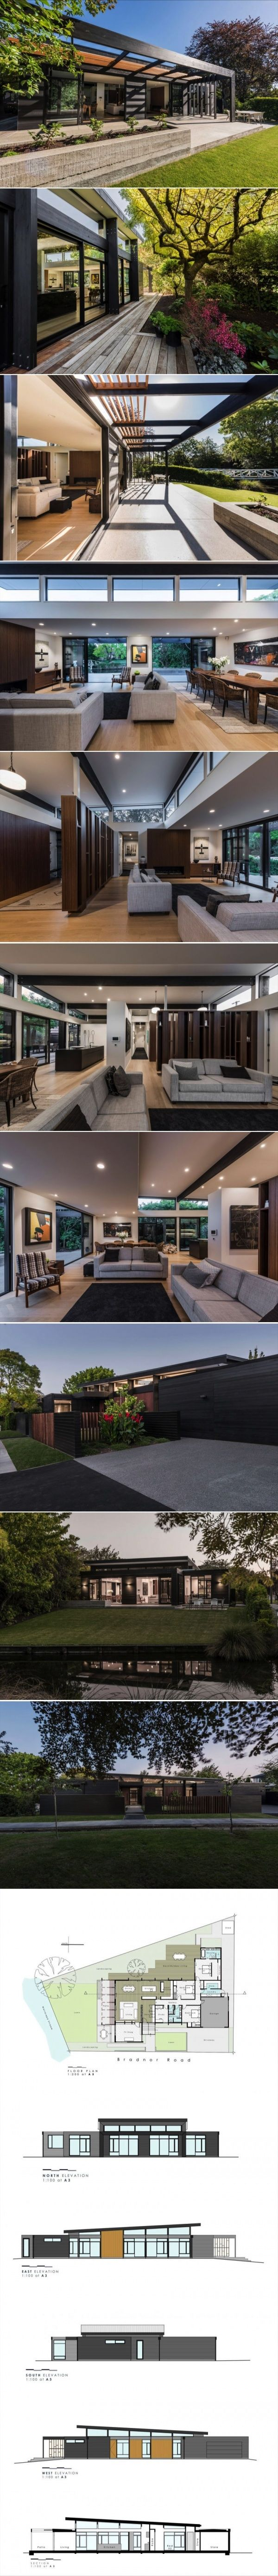 Cymon Allfrey Architects Ltd Design a Light and Open Contemporary Interior in New Zealand | HomeDSGN